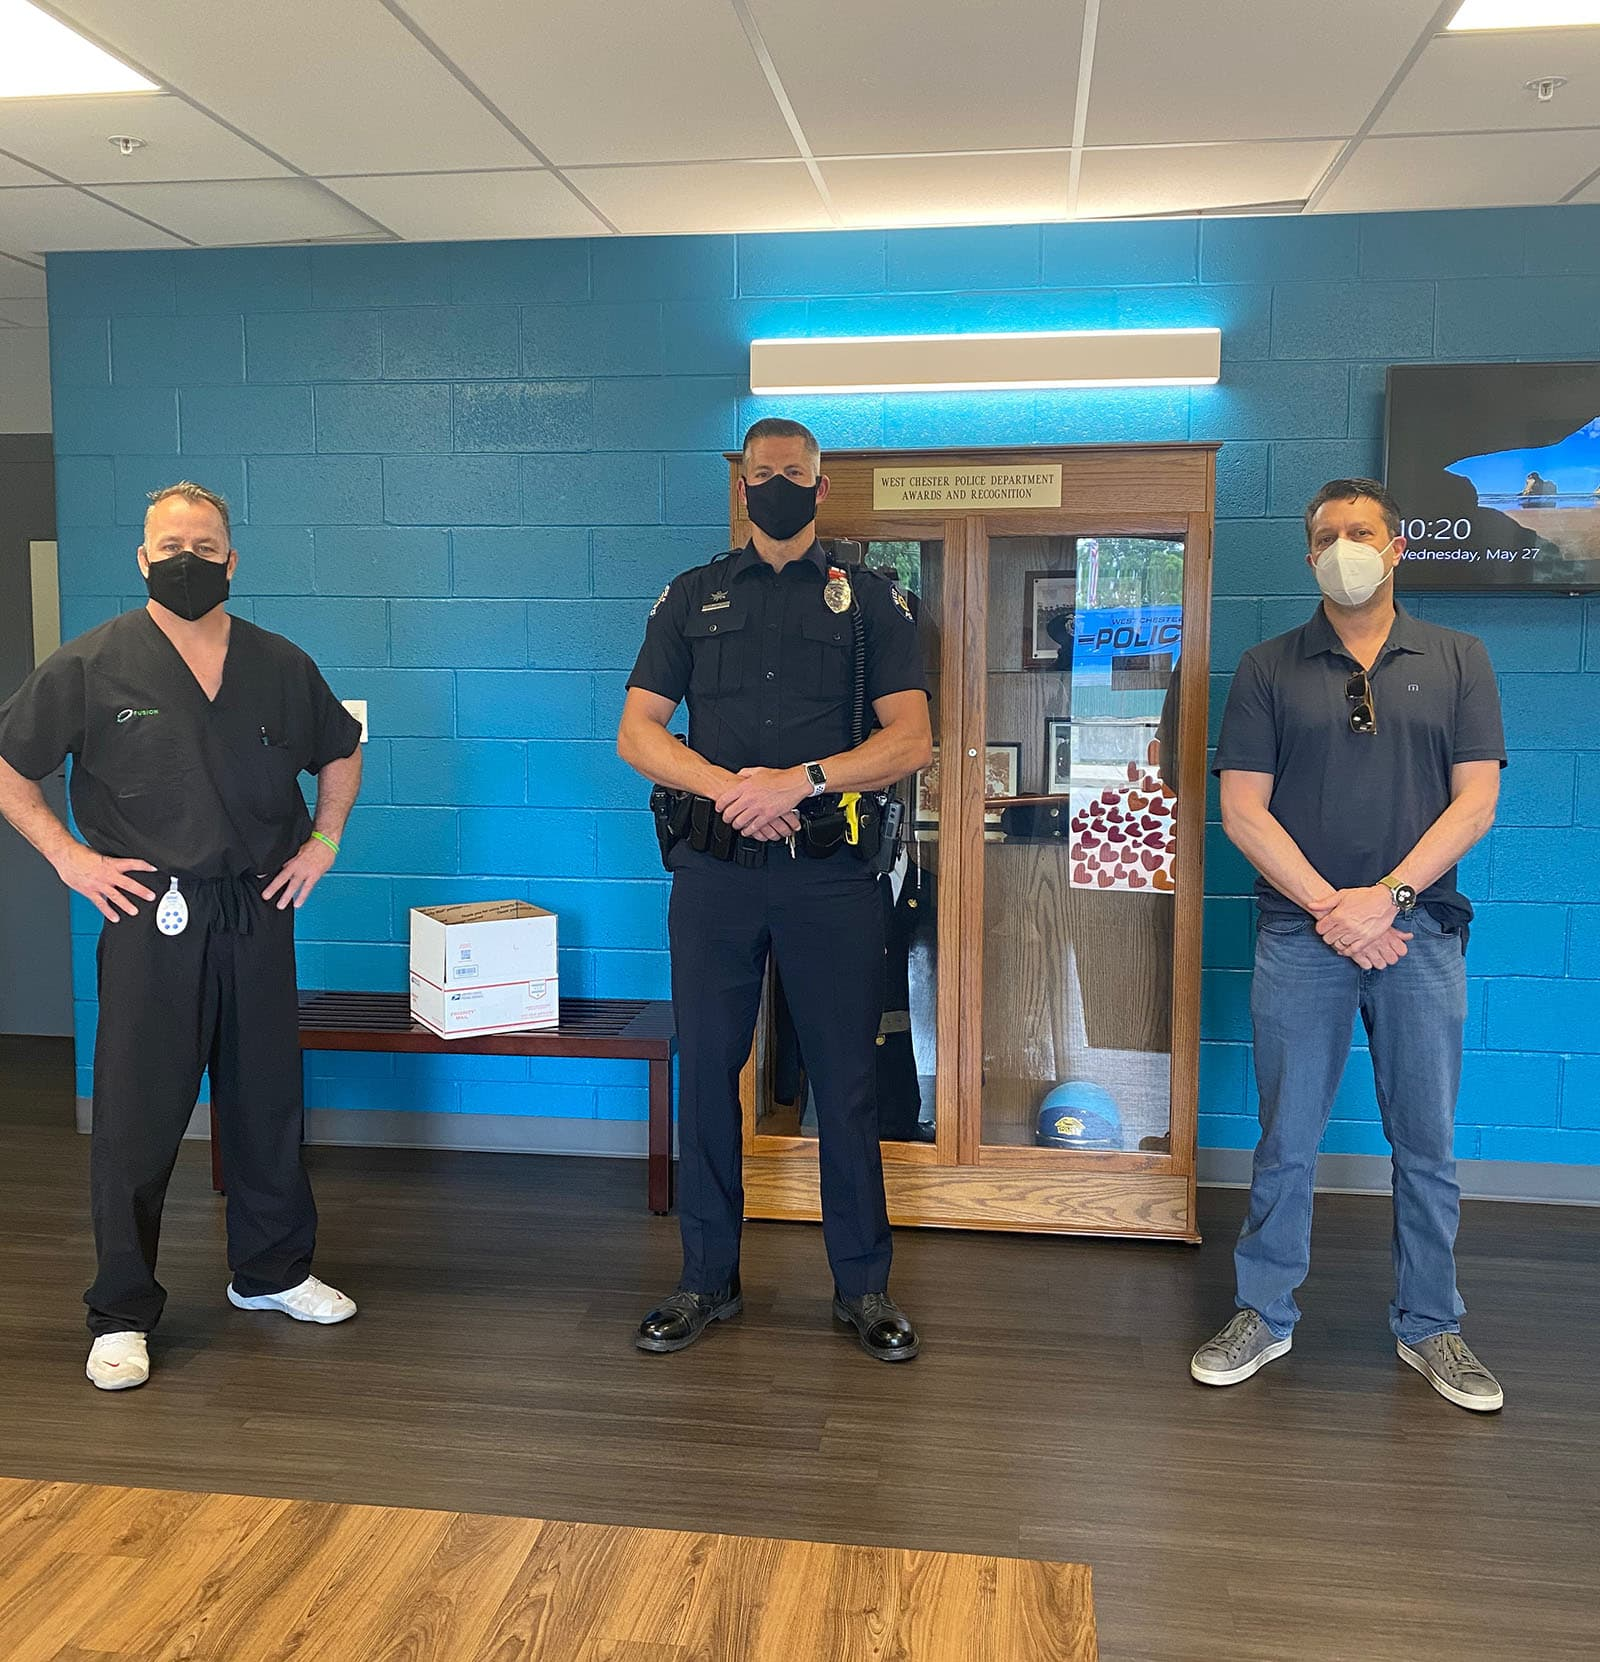 Fusion PPE Gives Masks and Hand Sanitizers to the West Chester, PA